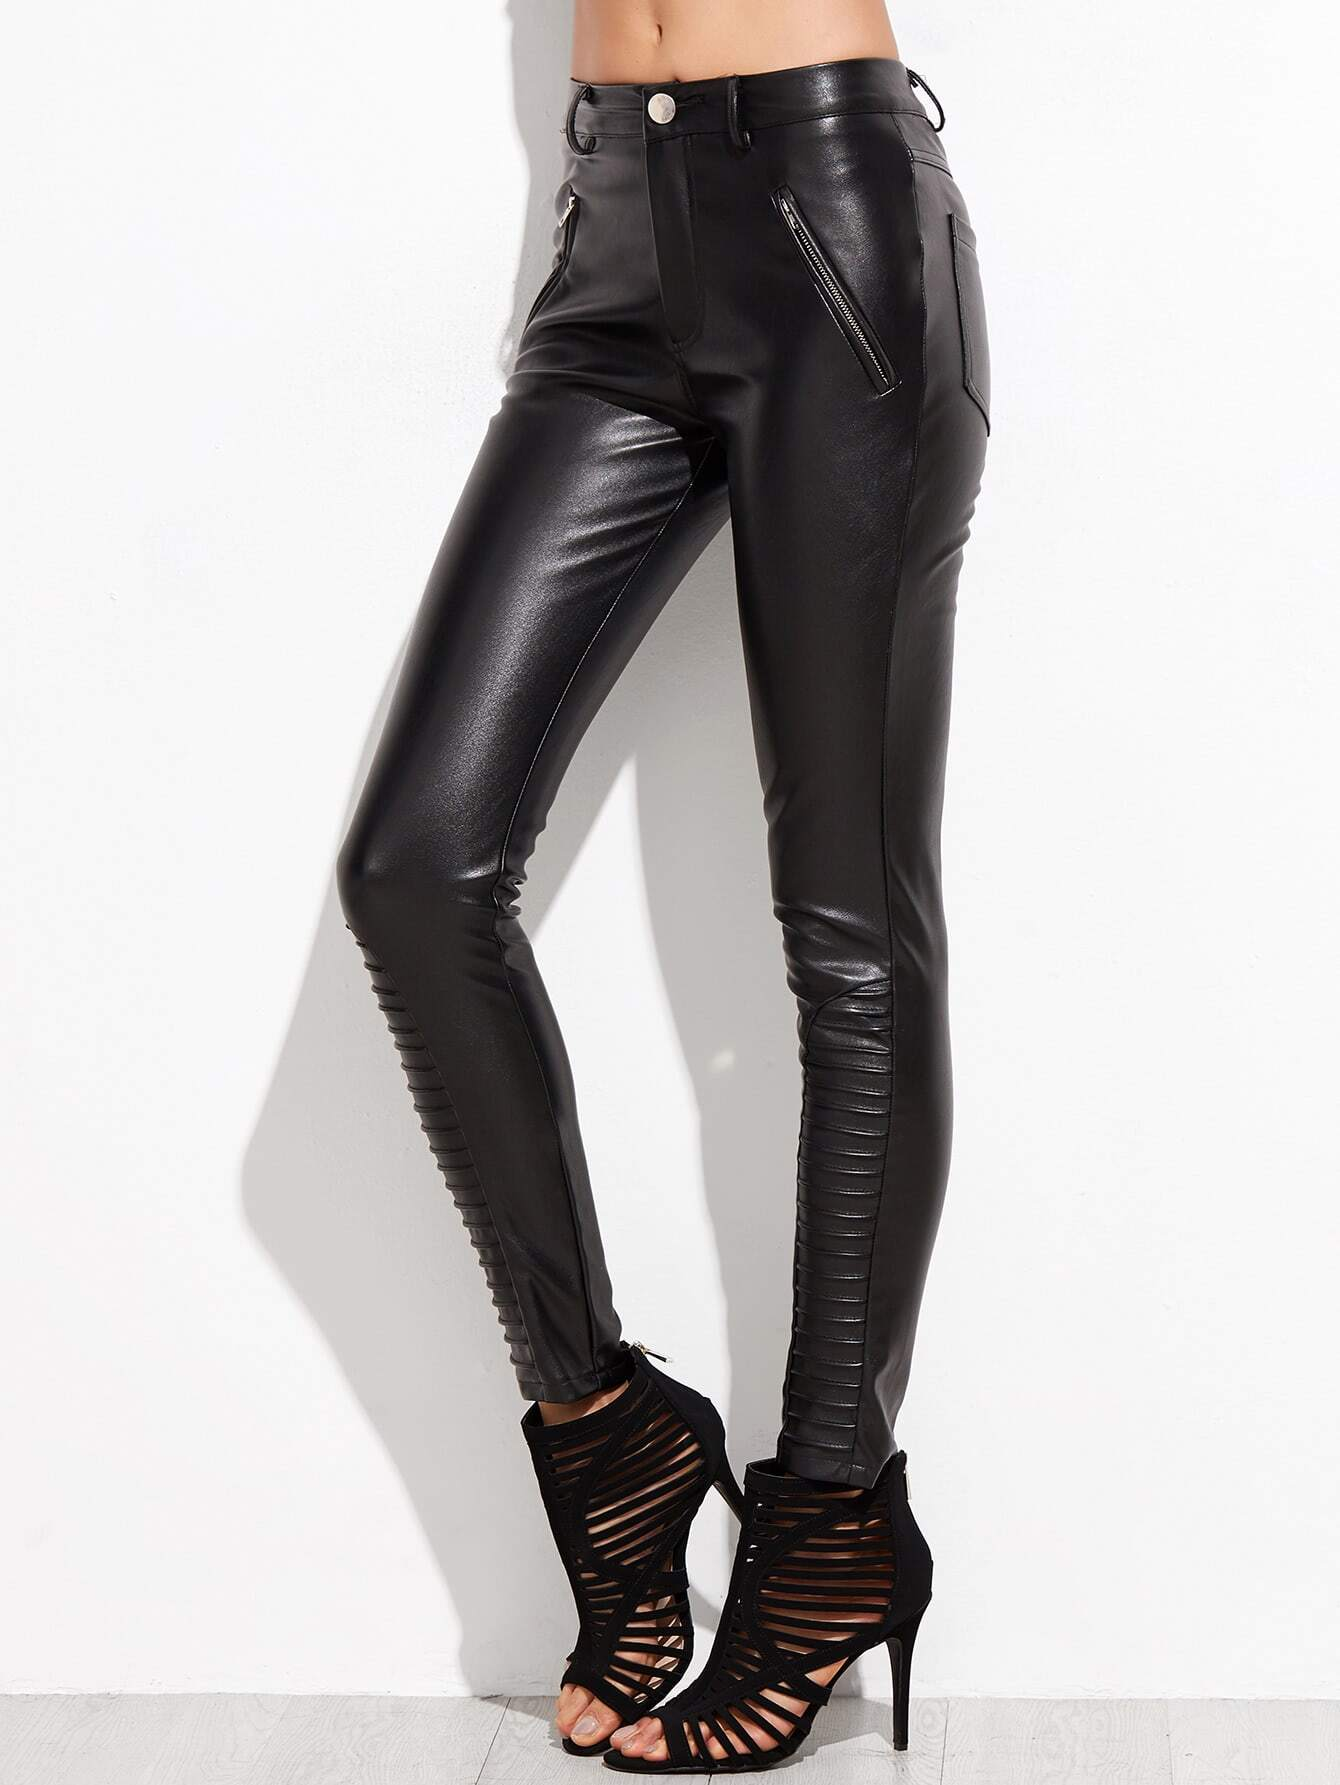 Black faux leather skinny pants with slanted metal zipper accents. Womens Leather Pants at leathernxg Black faux leather skinny pants with quilted panels and slanted zippers will elevate your Fall/Winter style. Black faux leather skinny pants with quilted panels and slanted zippers will elevate your Fall/Winter style.